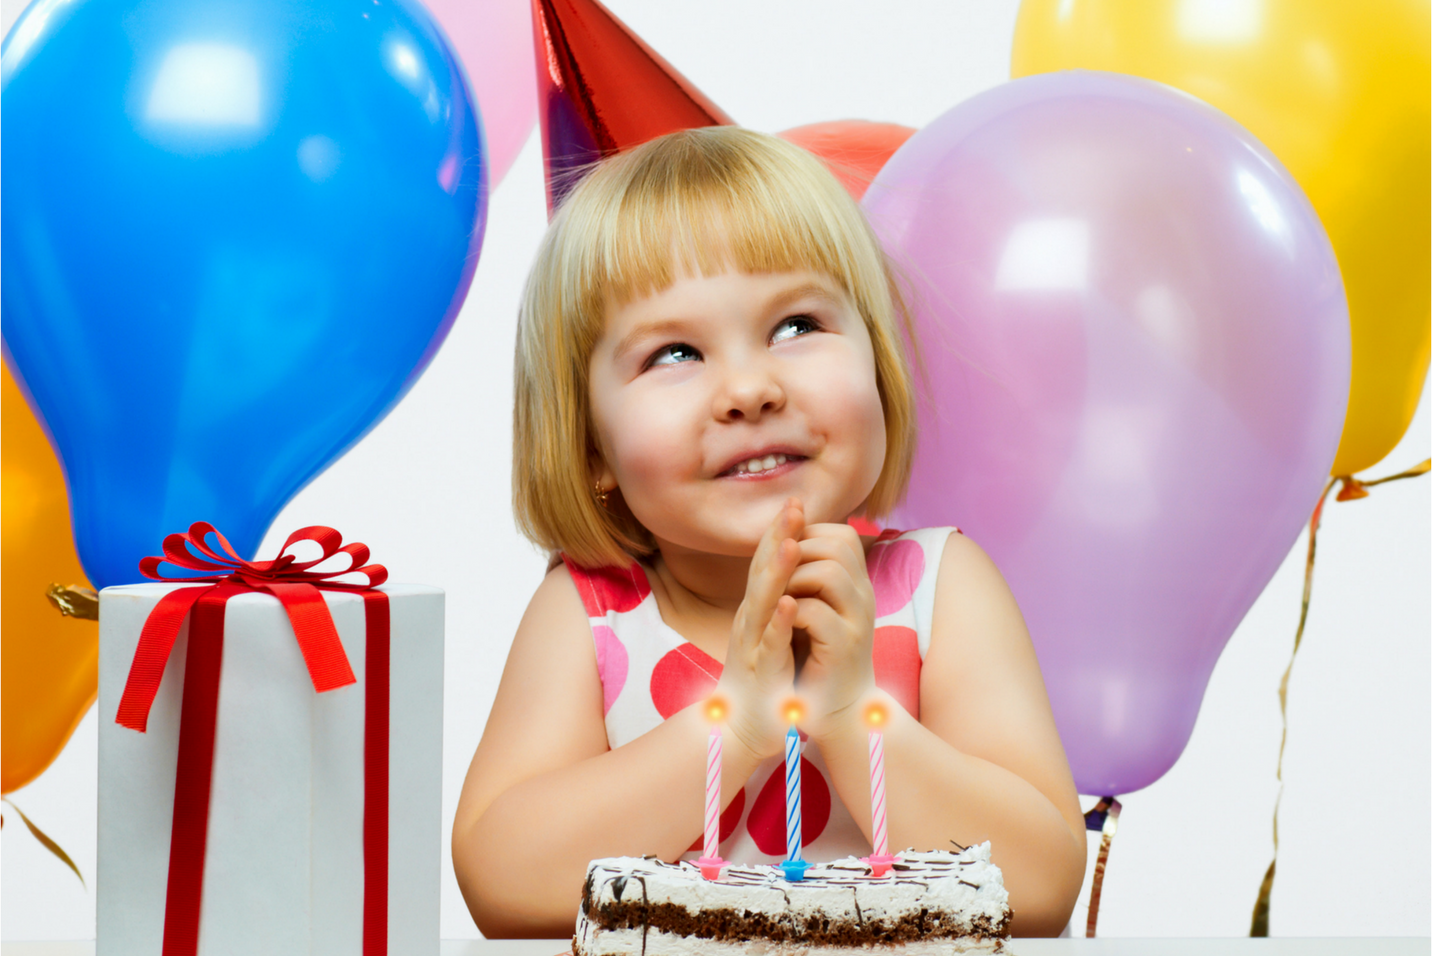 Young birthday girl smiling in front of cake and next to gift at her party